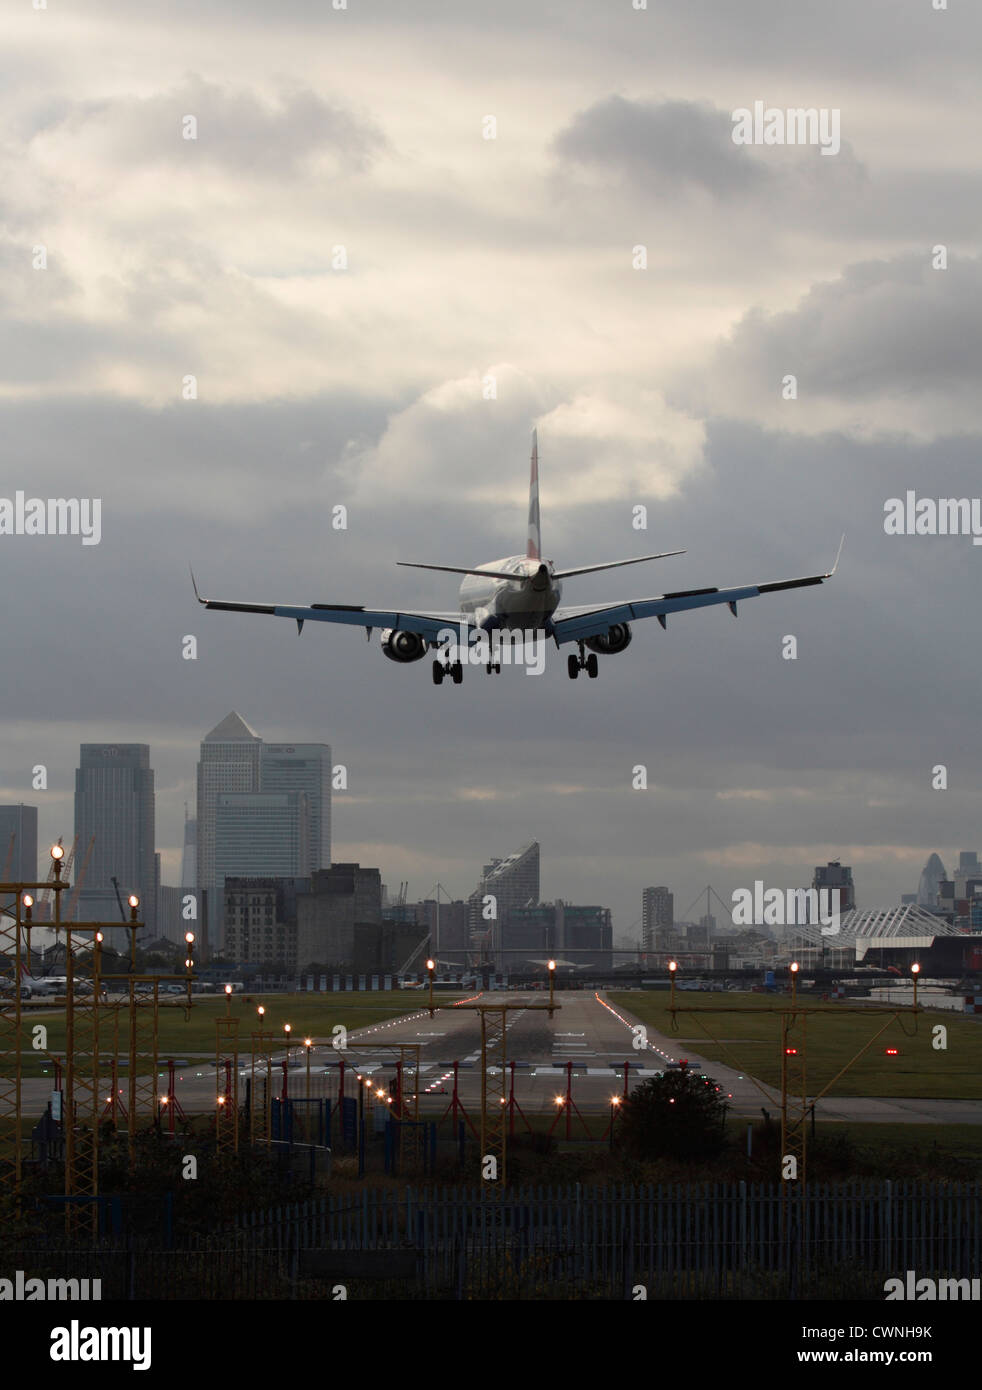 Jet plane landing at London City Airport, with the runway in sight and the financial district visible in the background. - Stock Image